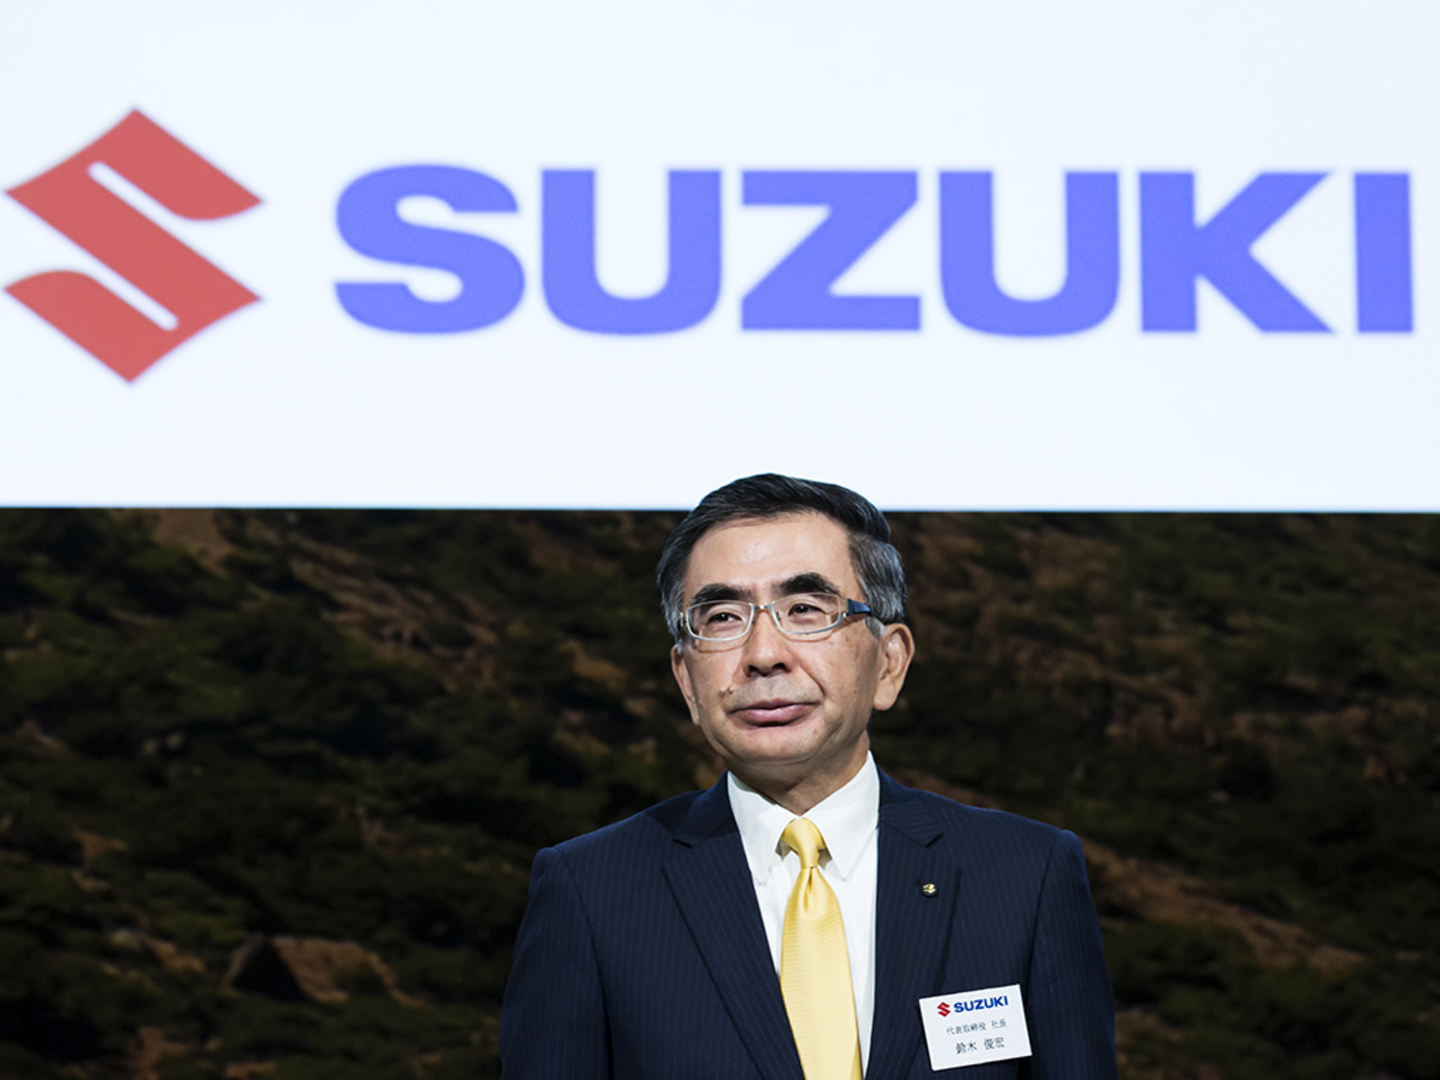 Suzuki wants to rev up India market share. But ageing portfolio, lag in EVs will be tight corners.